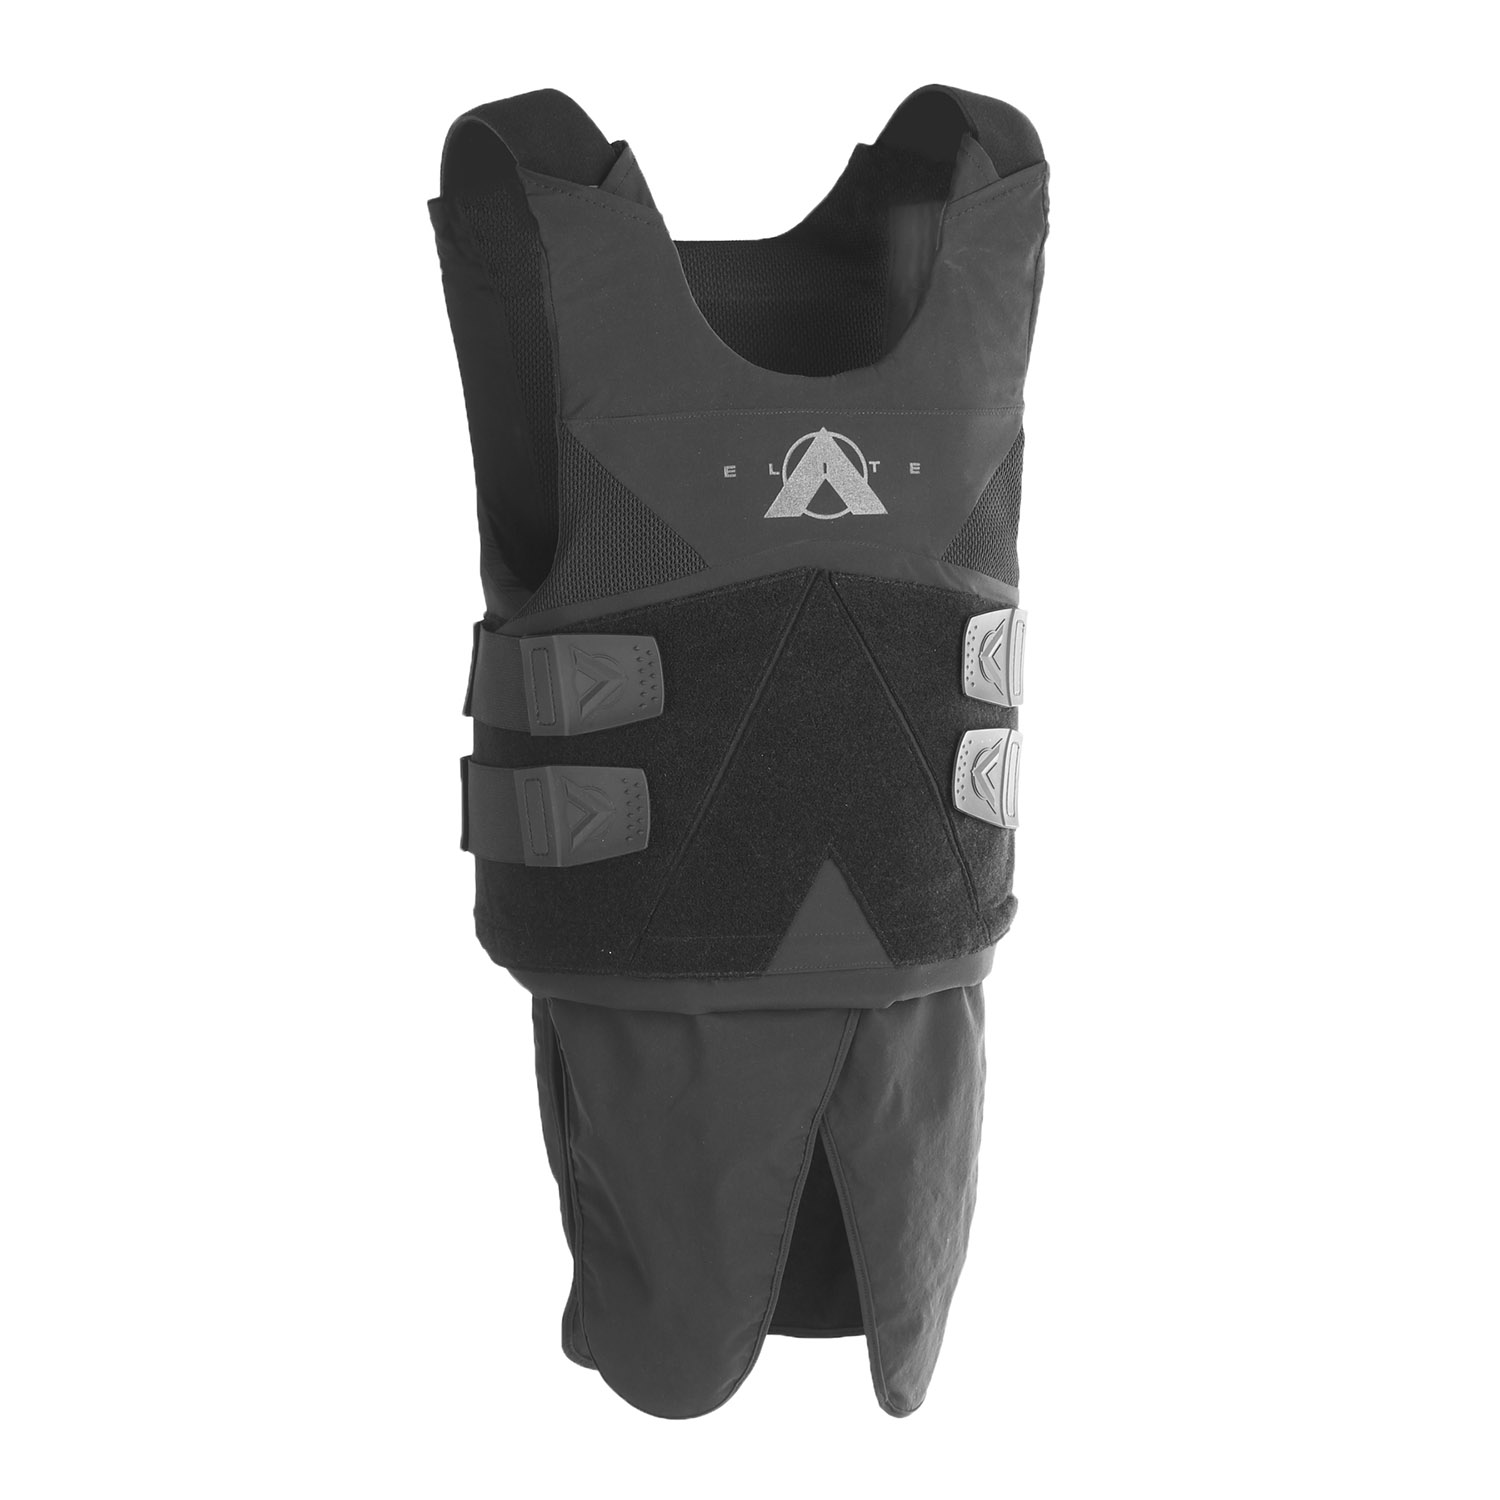 Point Blank Alpha Elite AXIIIA vest with Elite Carrier with